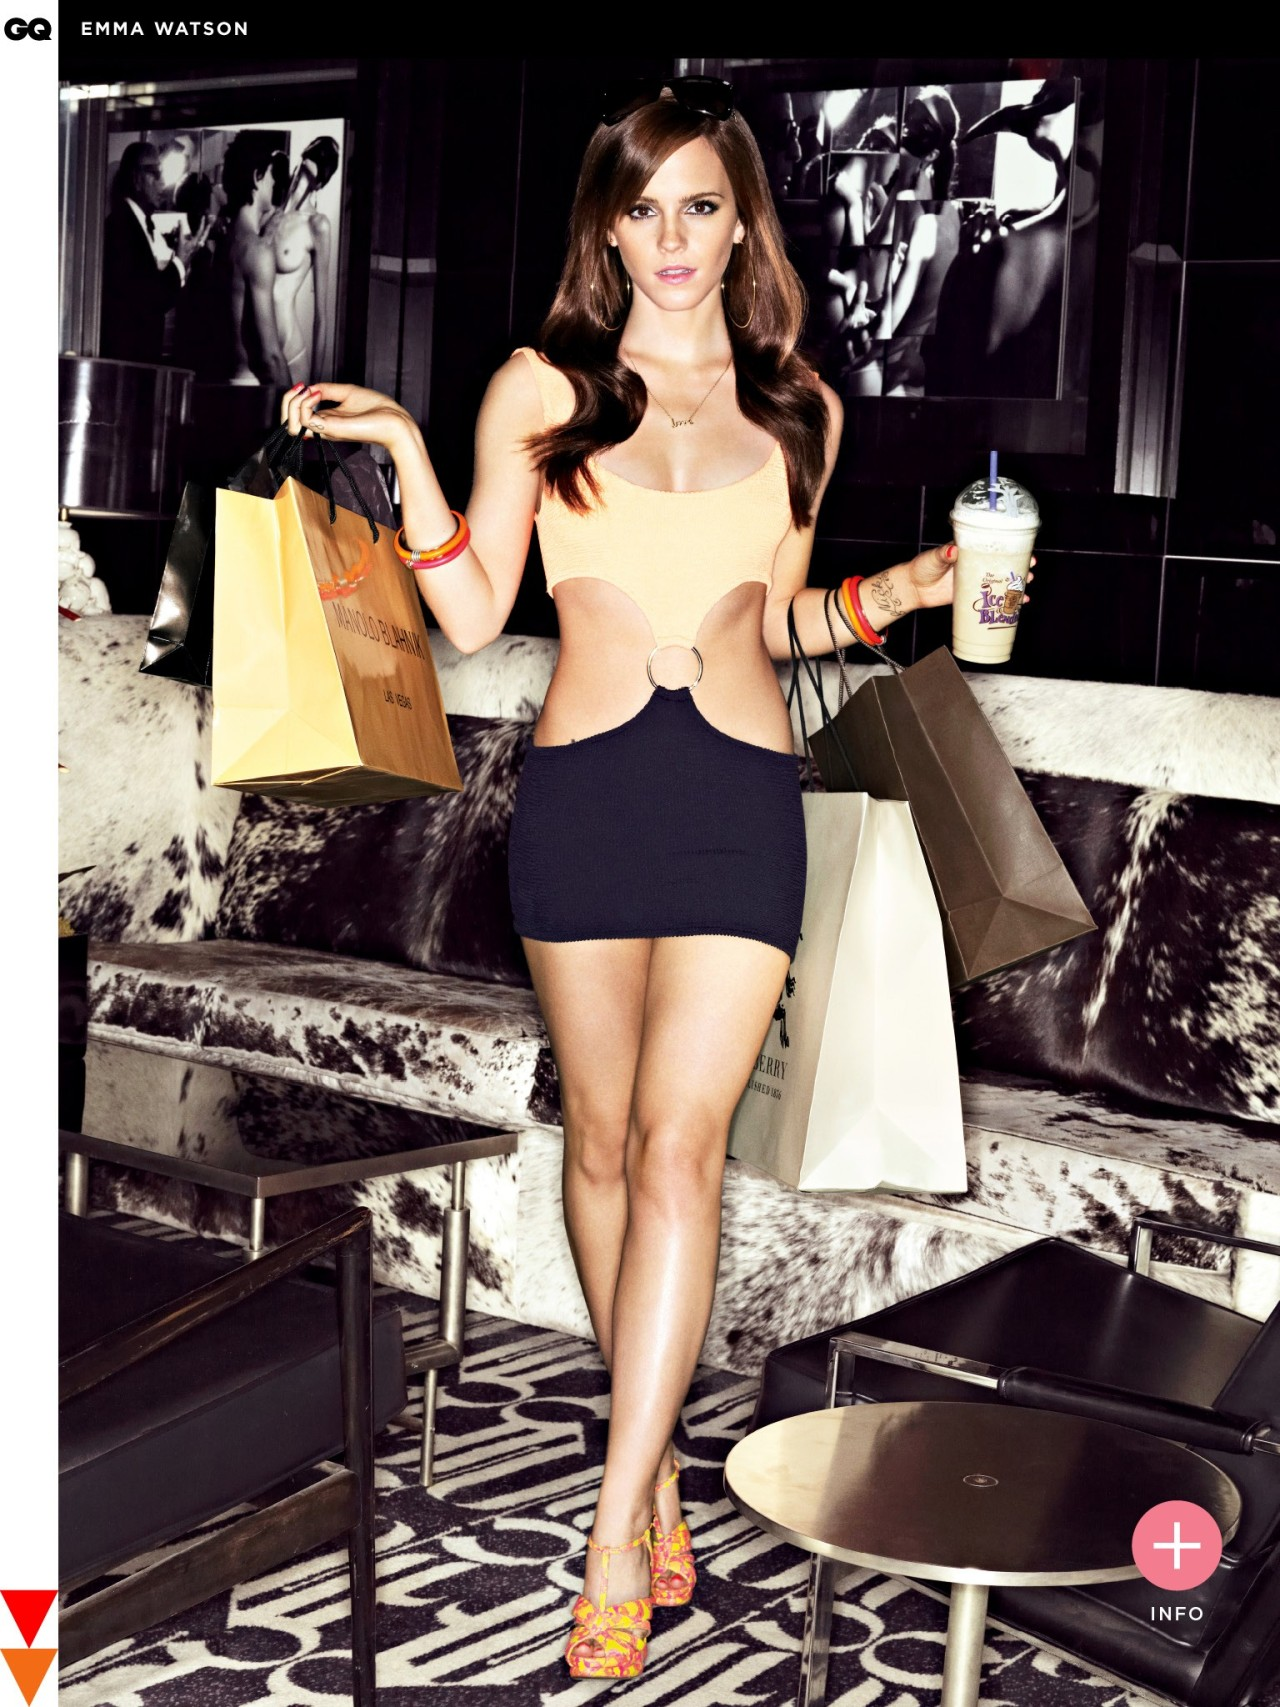 Emma Watson - British GQ May 2013